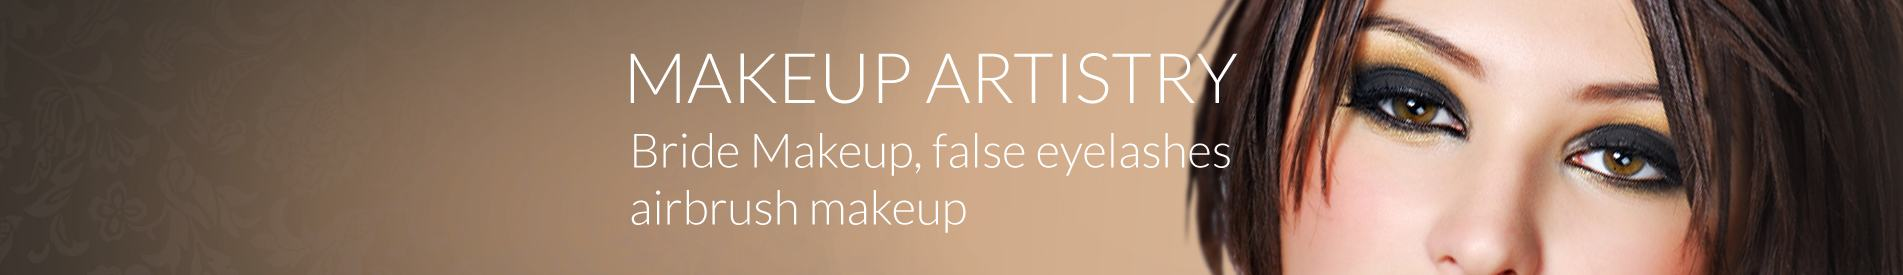 Makeup Application Services by Makeup Artists in Coral Gables